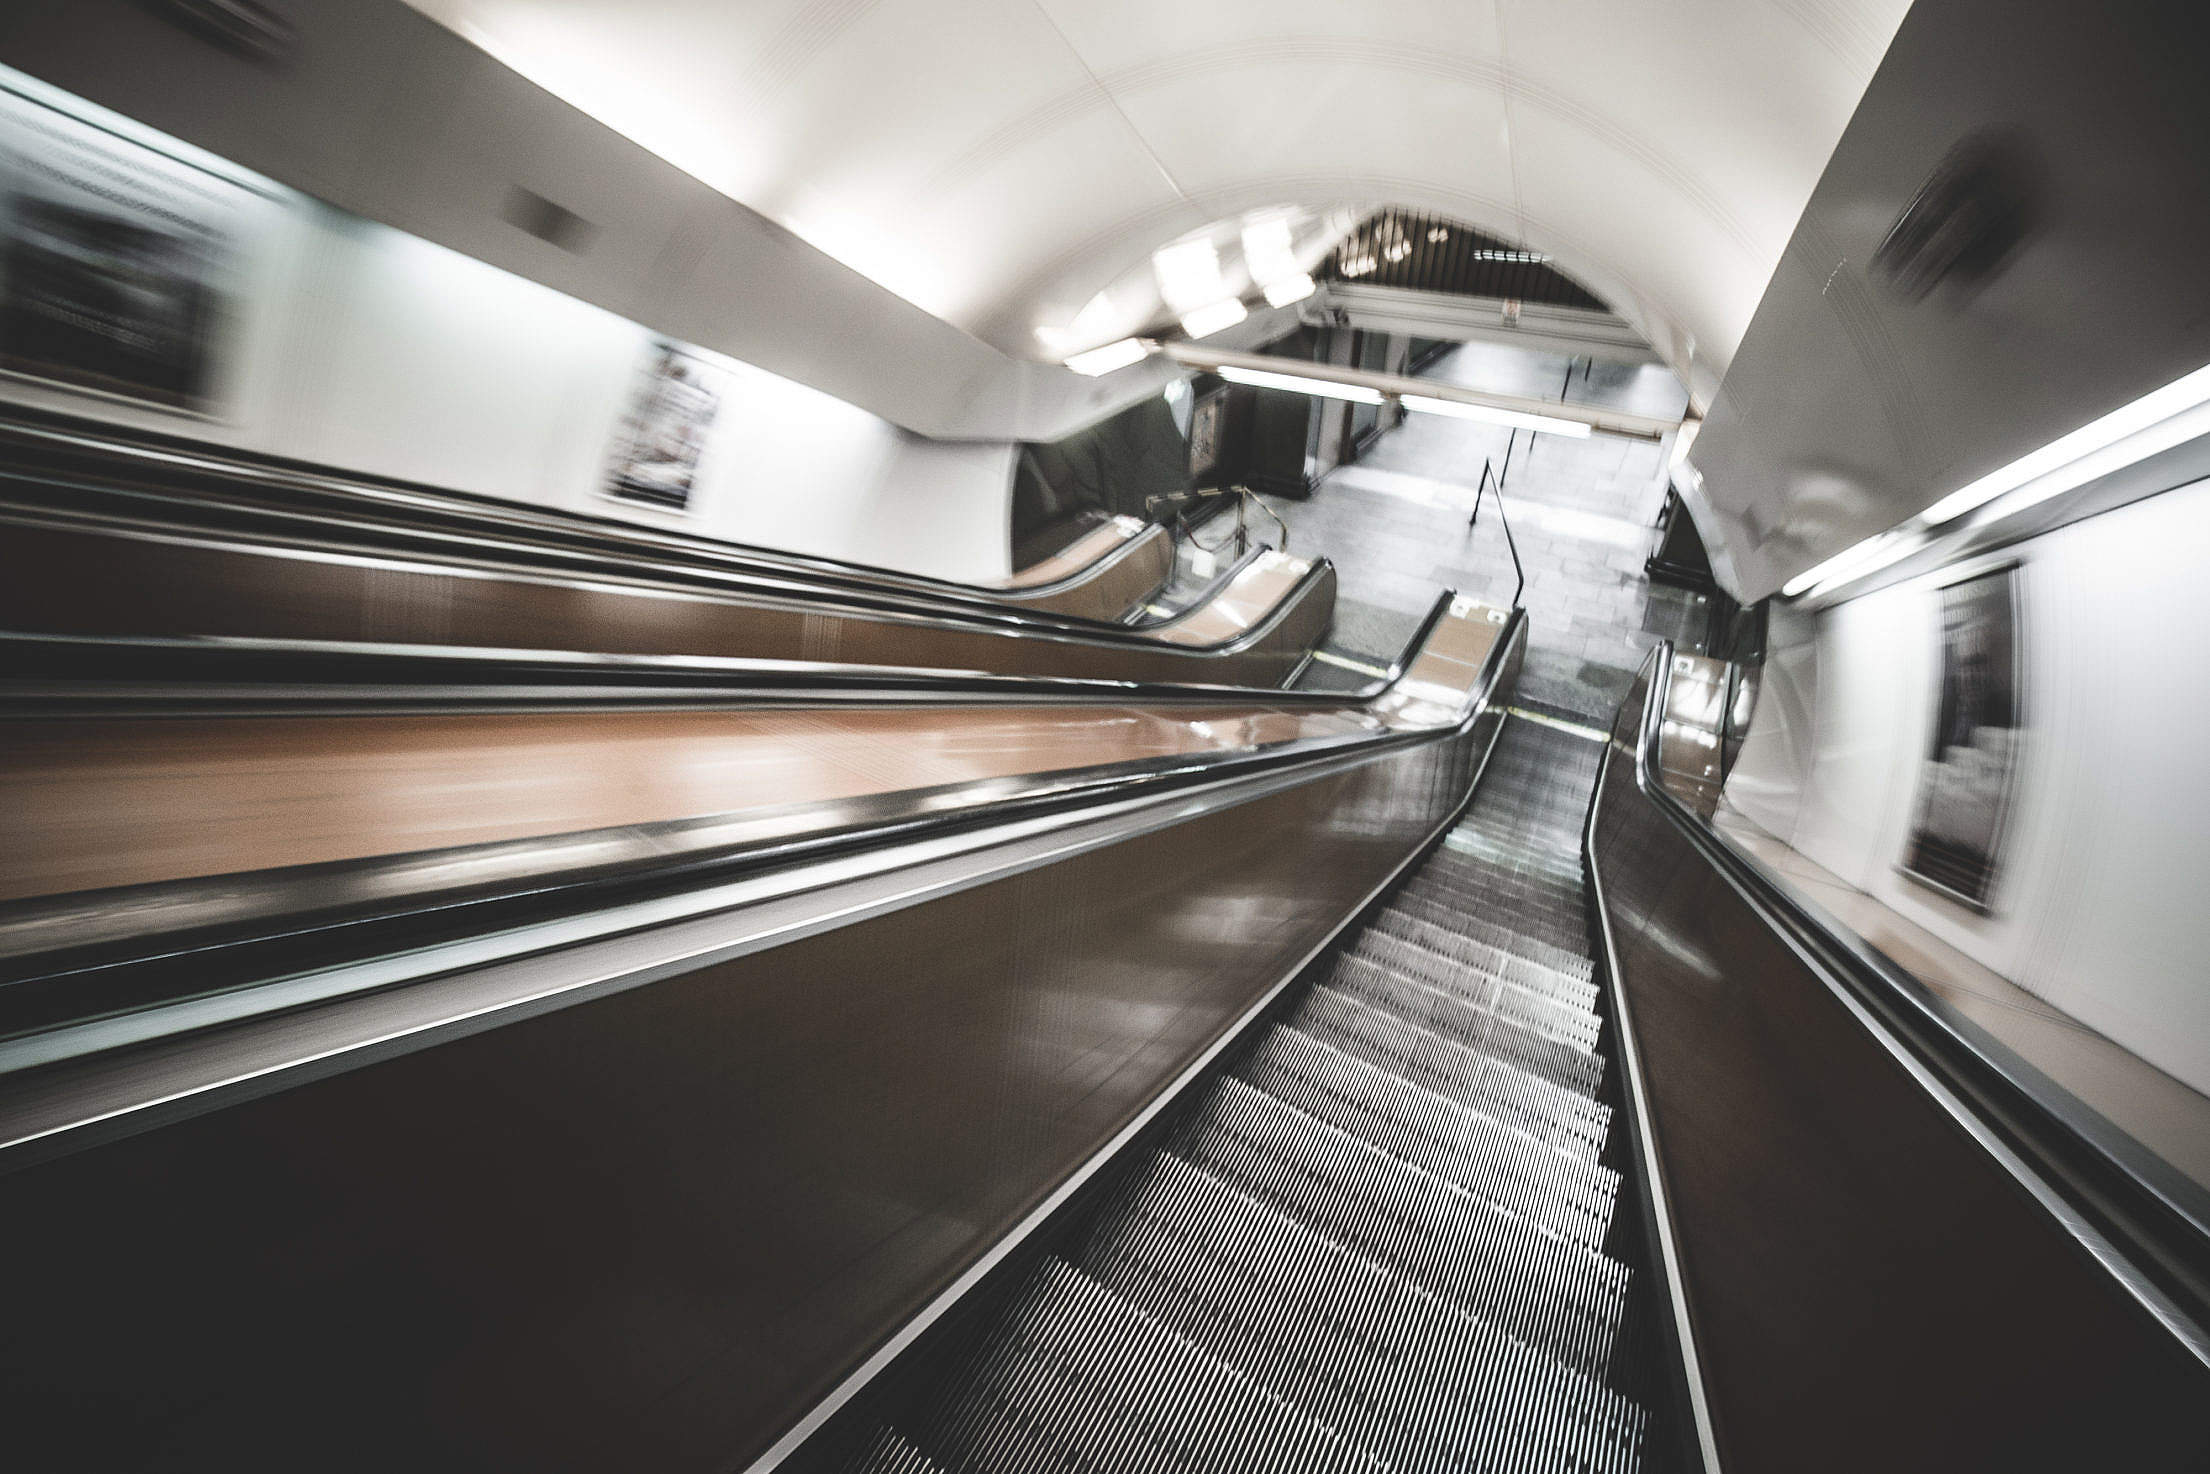 Underground Escalator in Motion Free Stock Photo